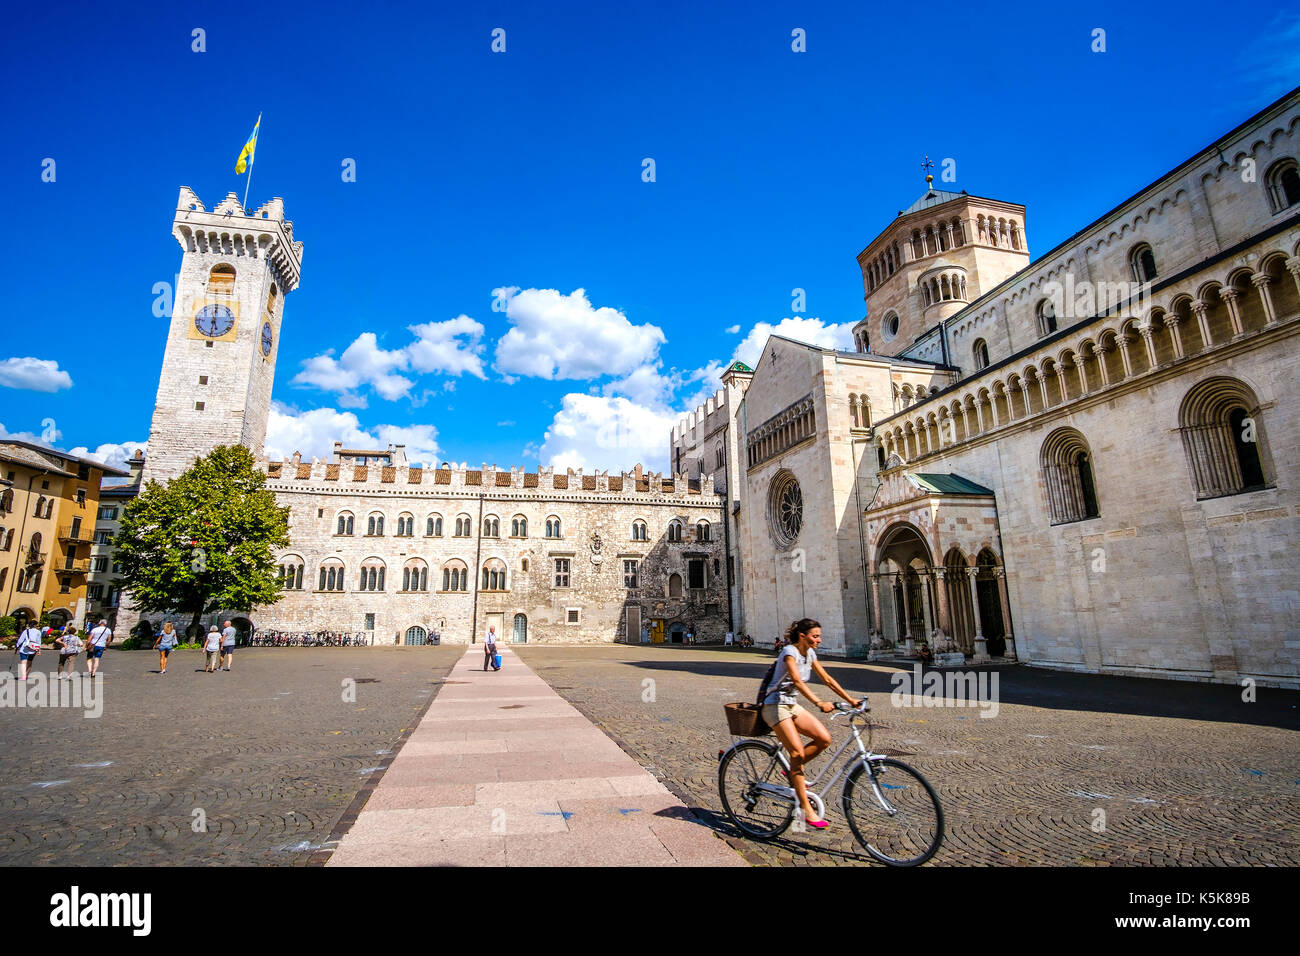 Trento, Italy, 14 Aug 2017 - A young woman go in bicycle in the middle of Piazza Duomo in Trento. Travel by bicycle in Italy, cultural trip in Italy - Stock Image